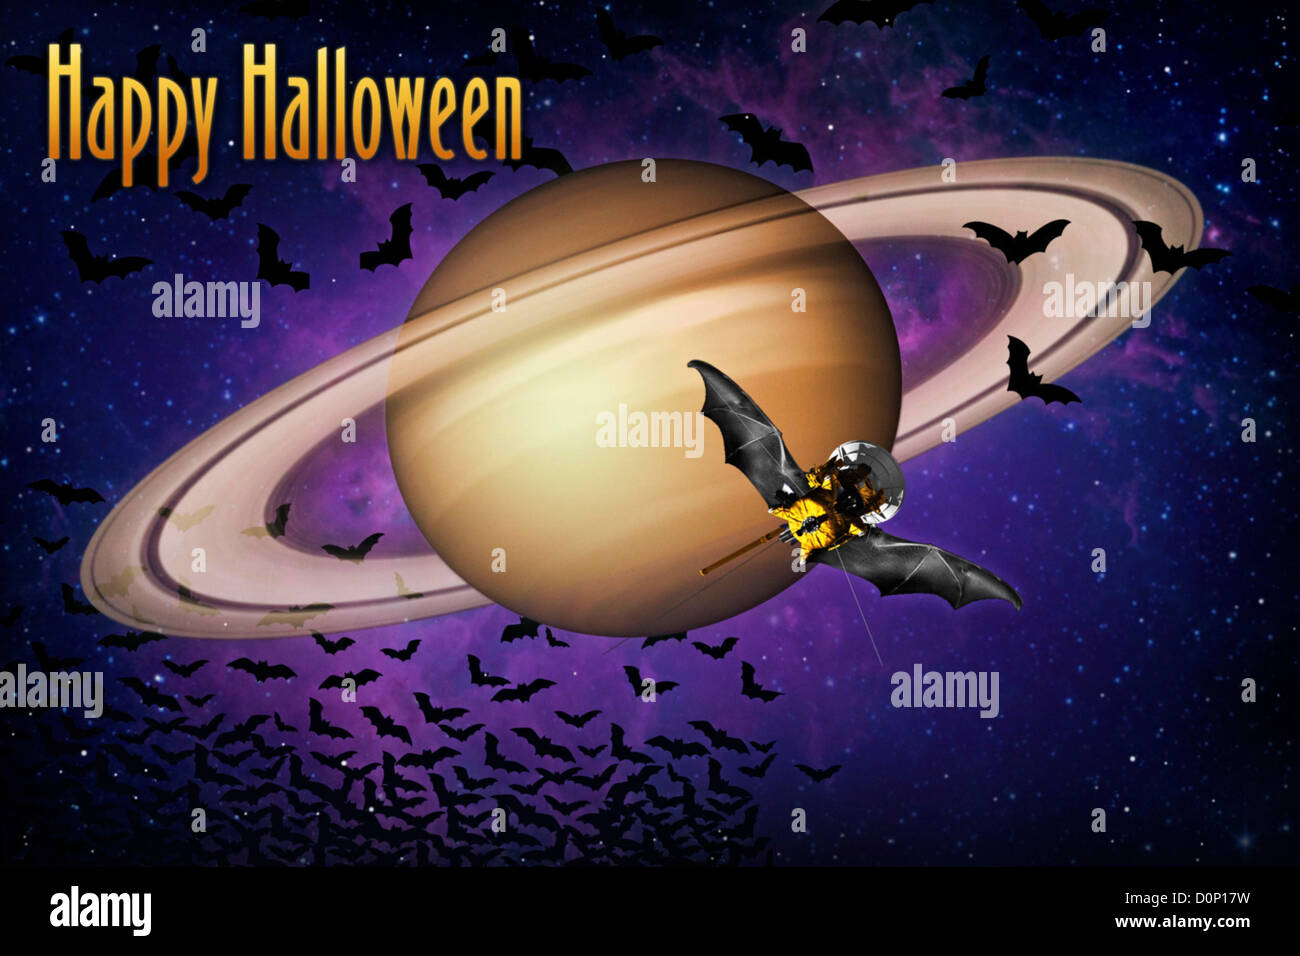 Halloween Greetings from Saturn - Stock Image